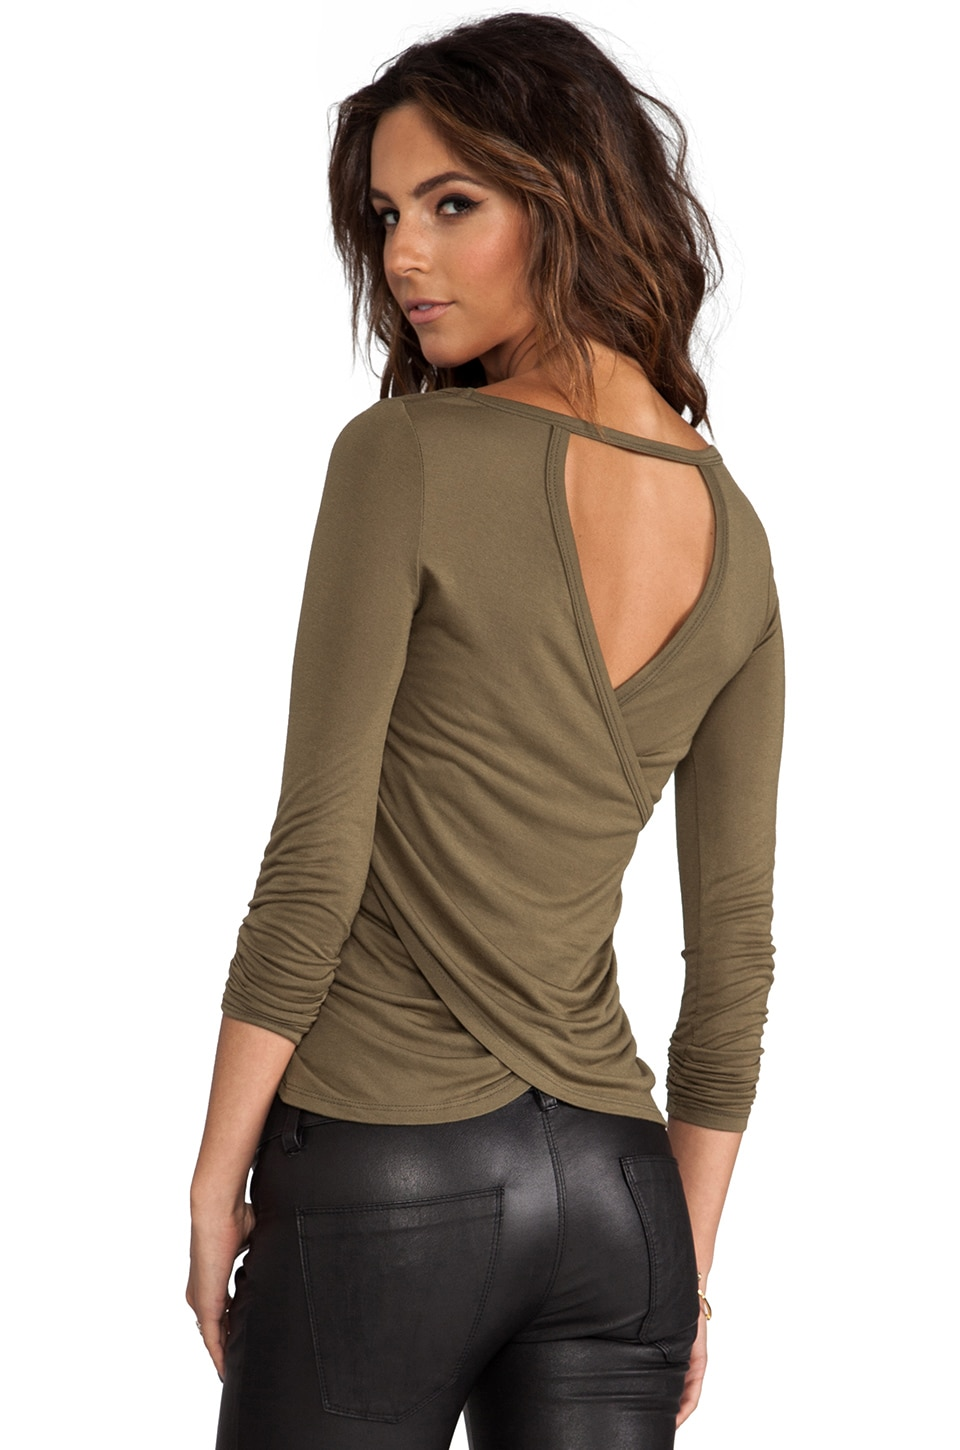 WOODLEIGH Mina Top in Khaki